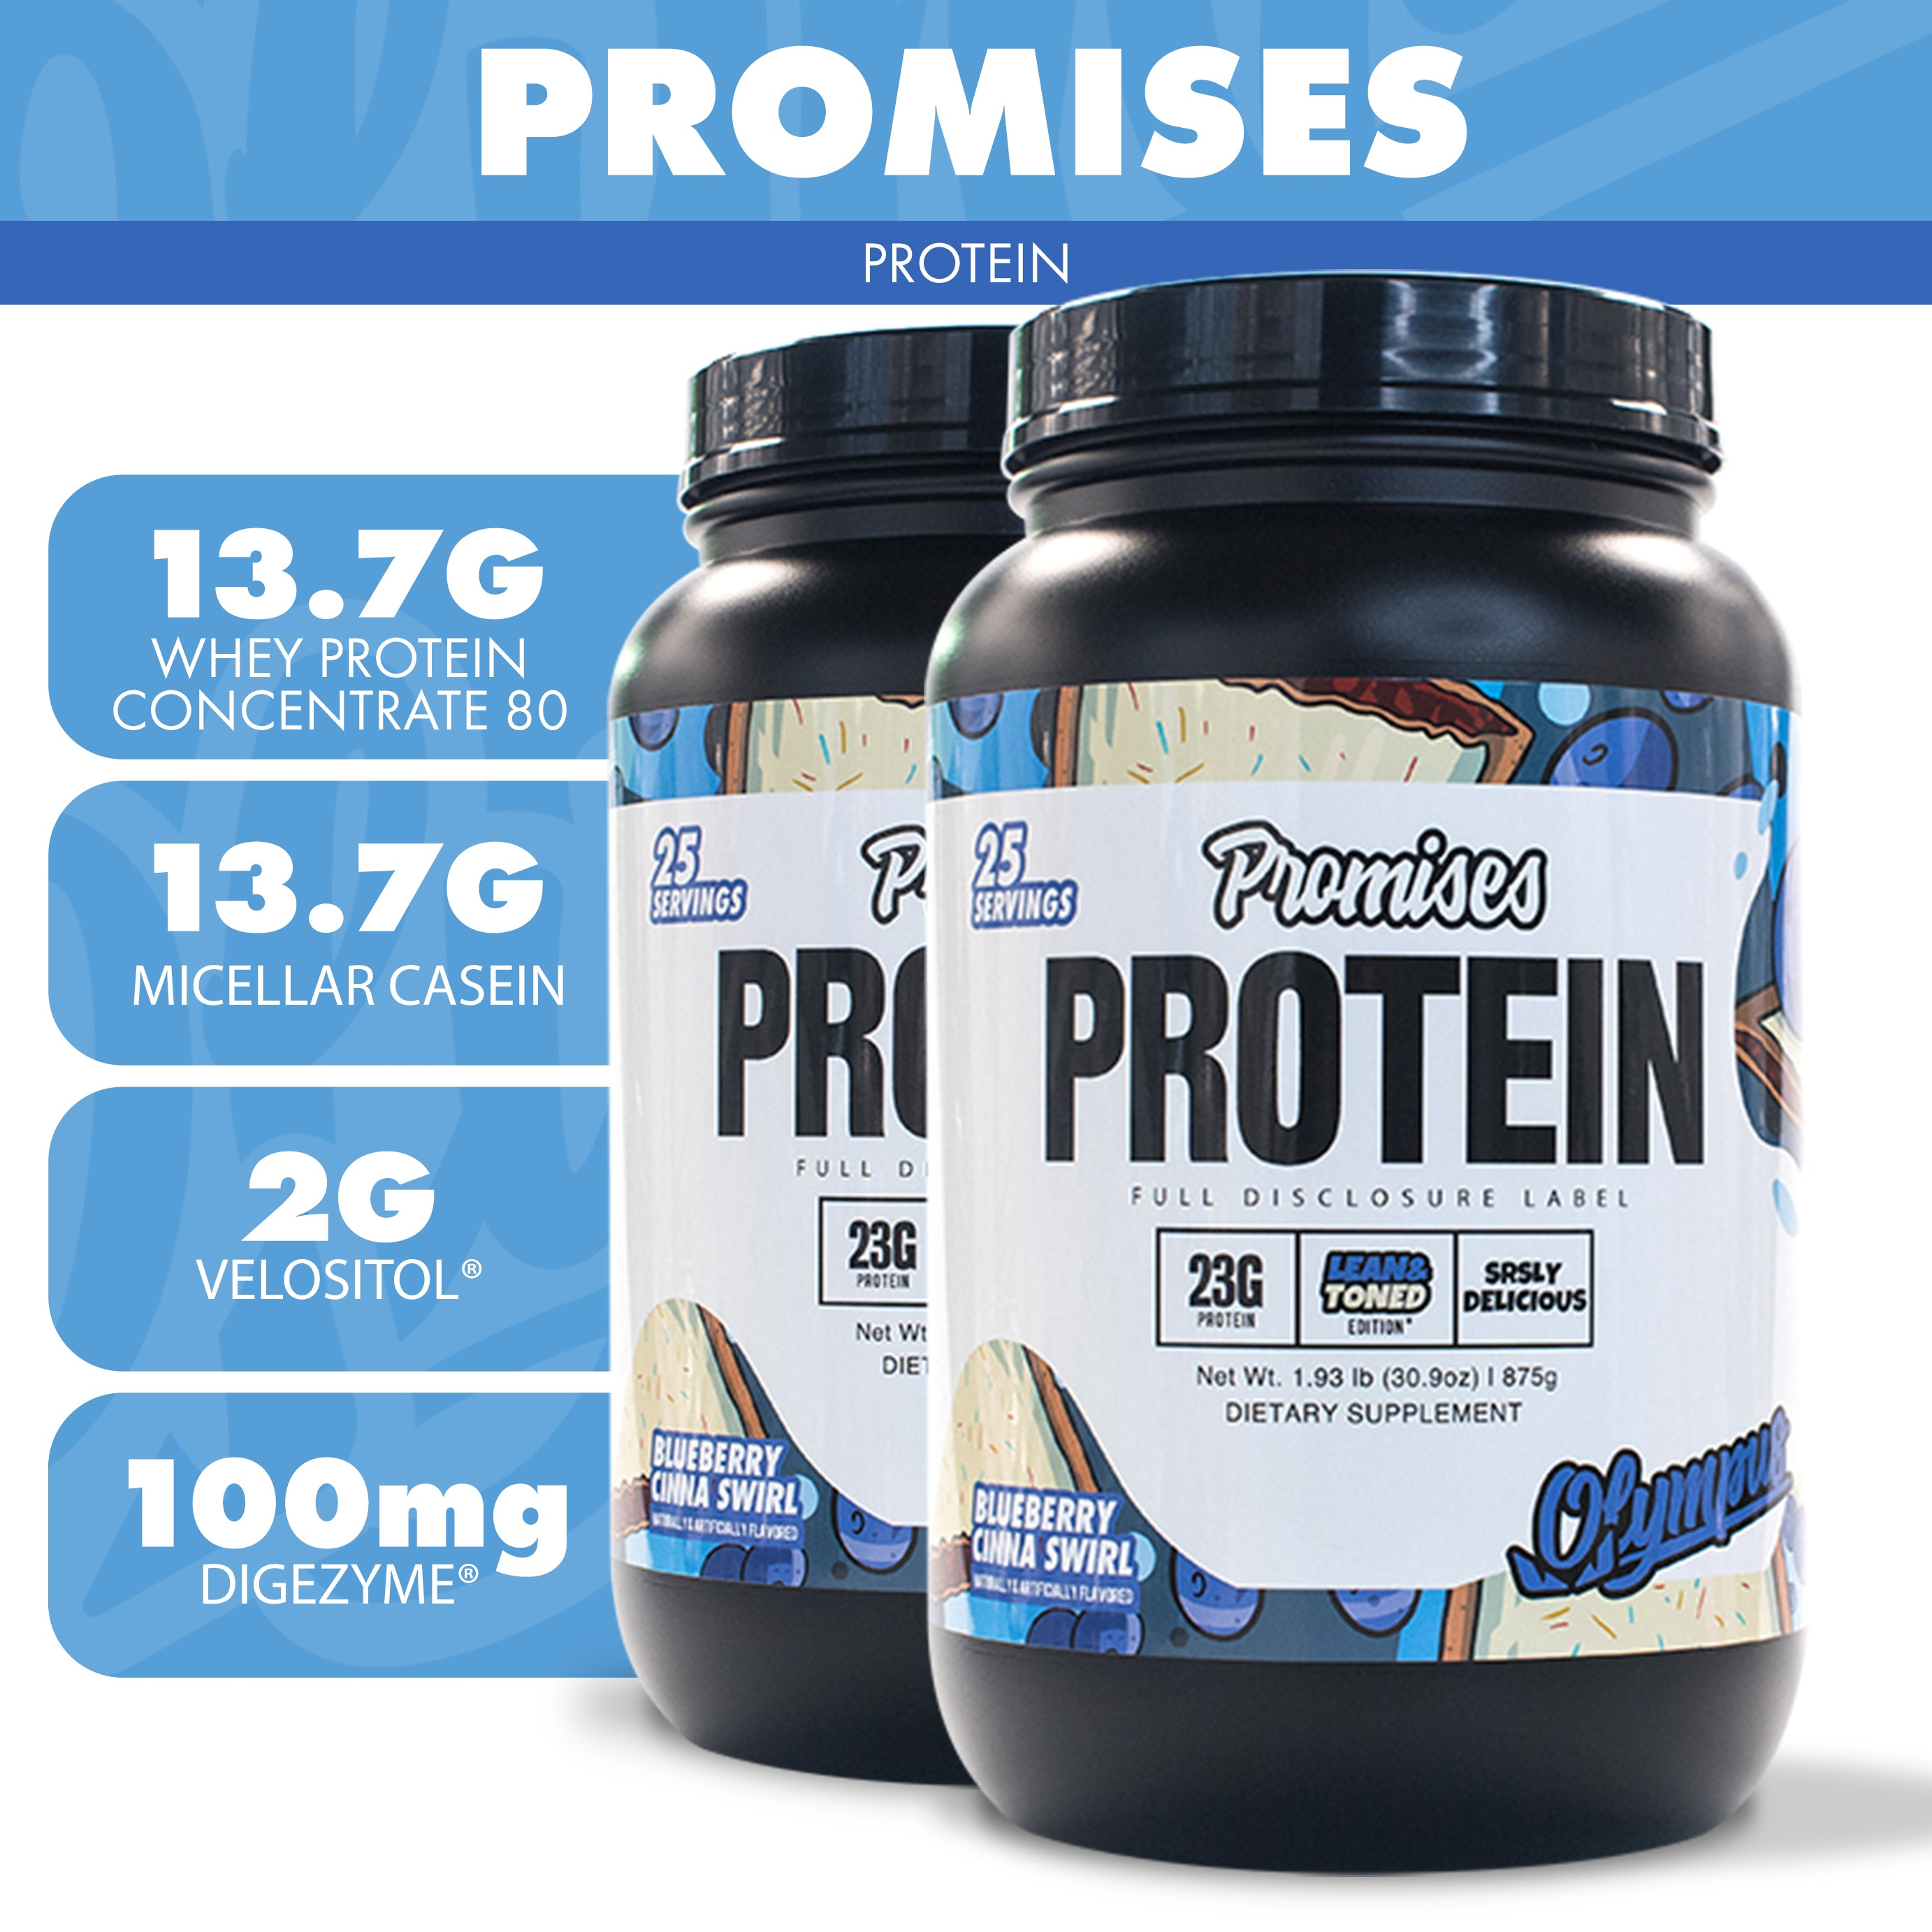 Load image into Gallery viewer, Promises Protein Limited Edition 5 Pack + Free Grind Energy SUPER DEAL